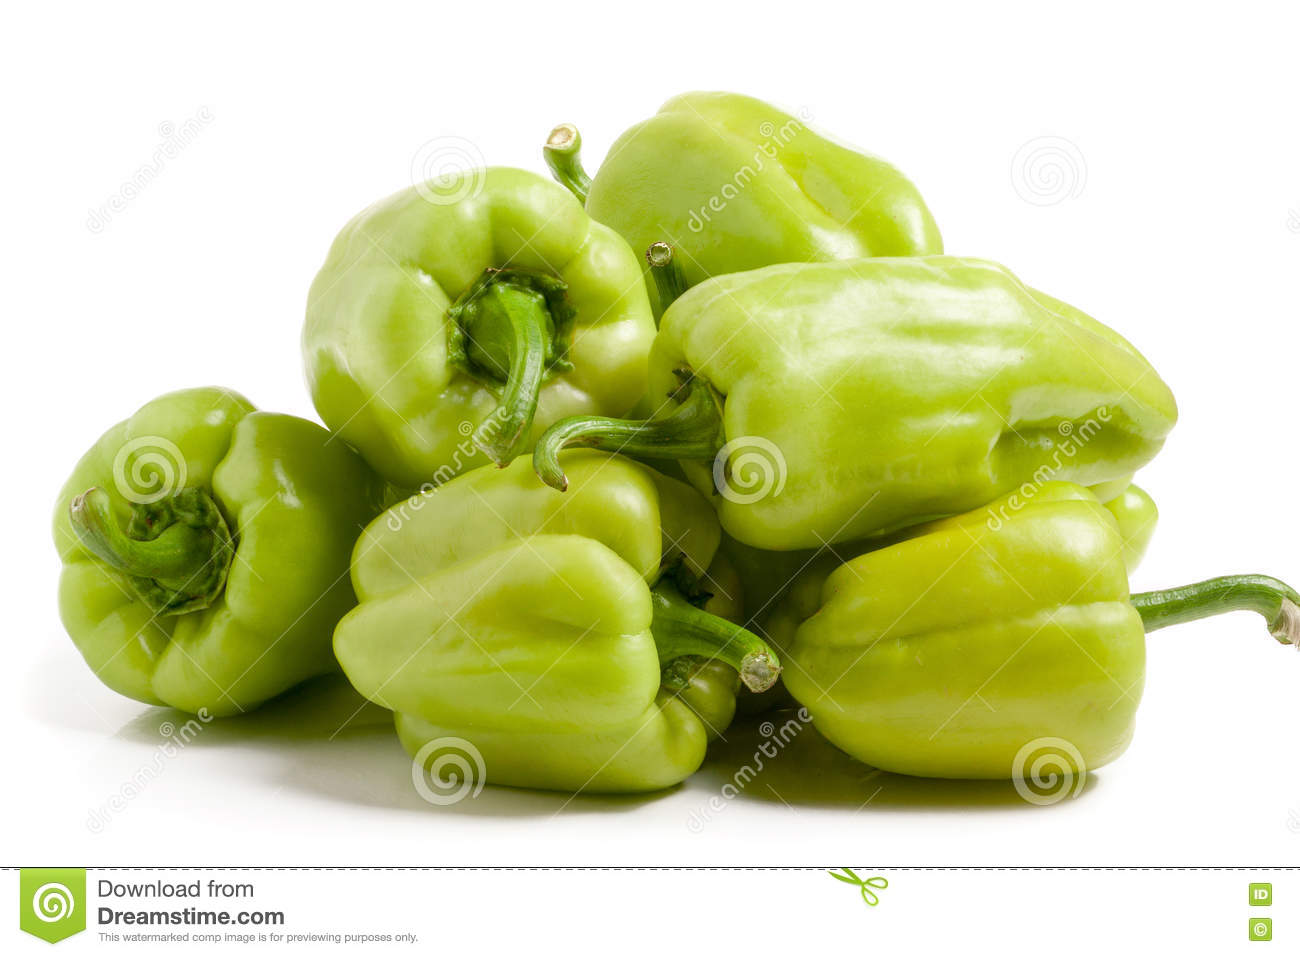 Bunch of green peppers isolated on white background